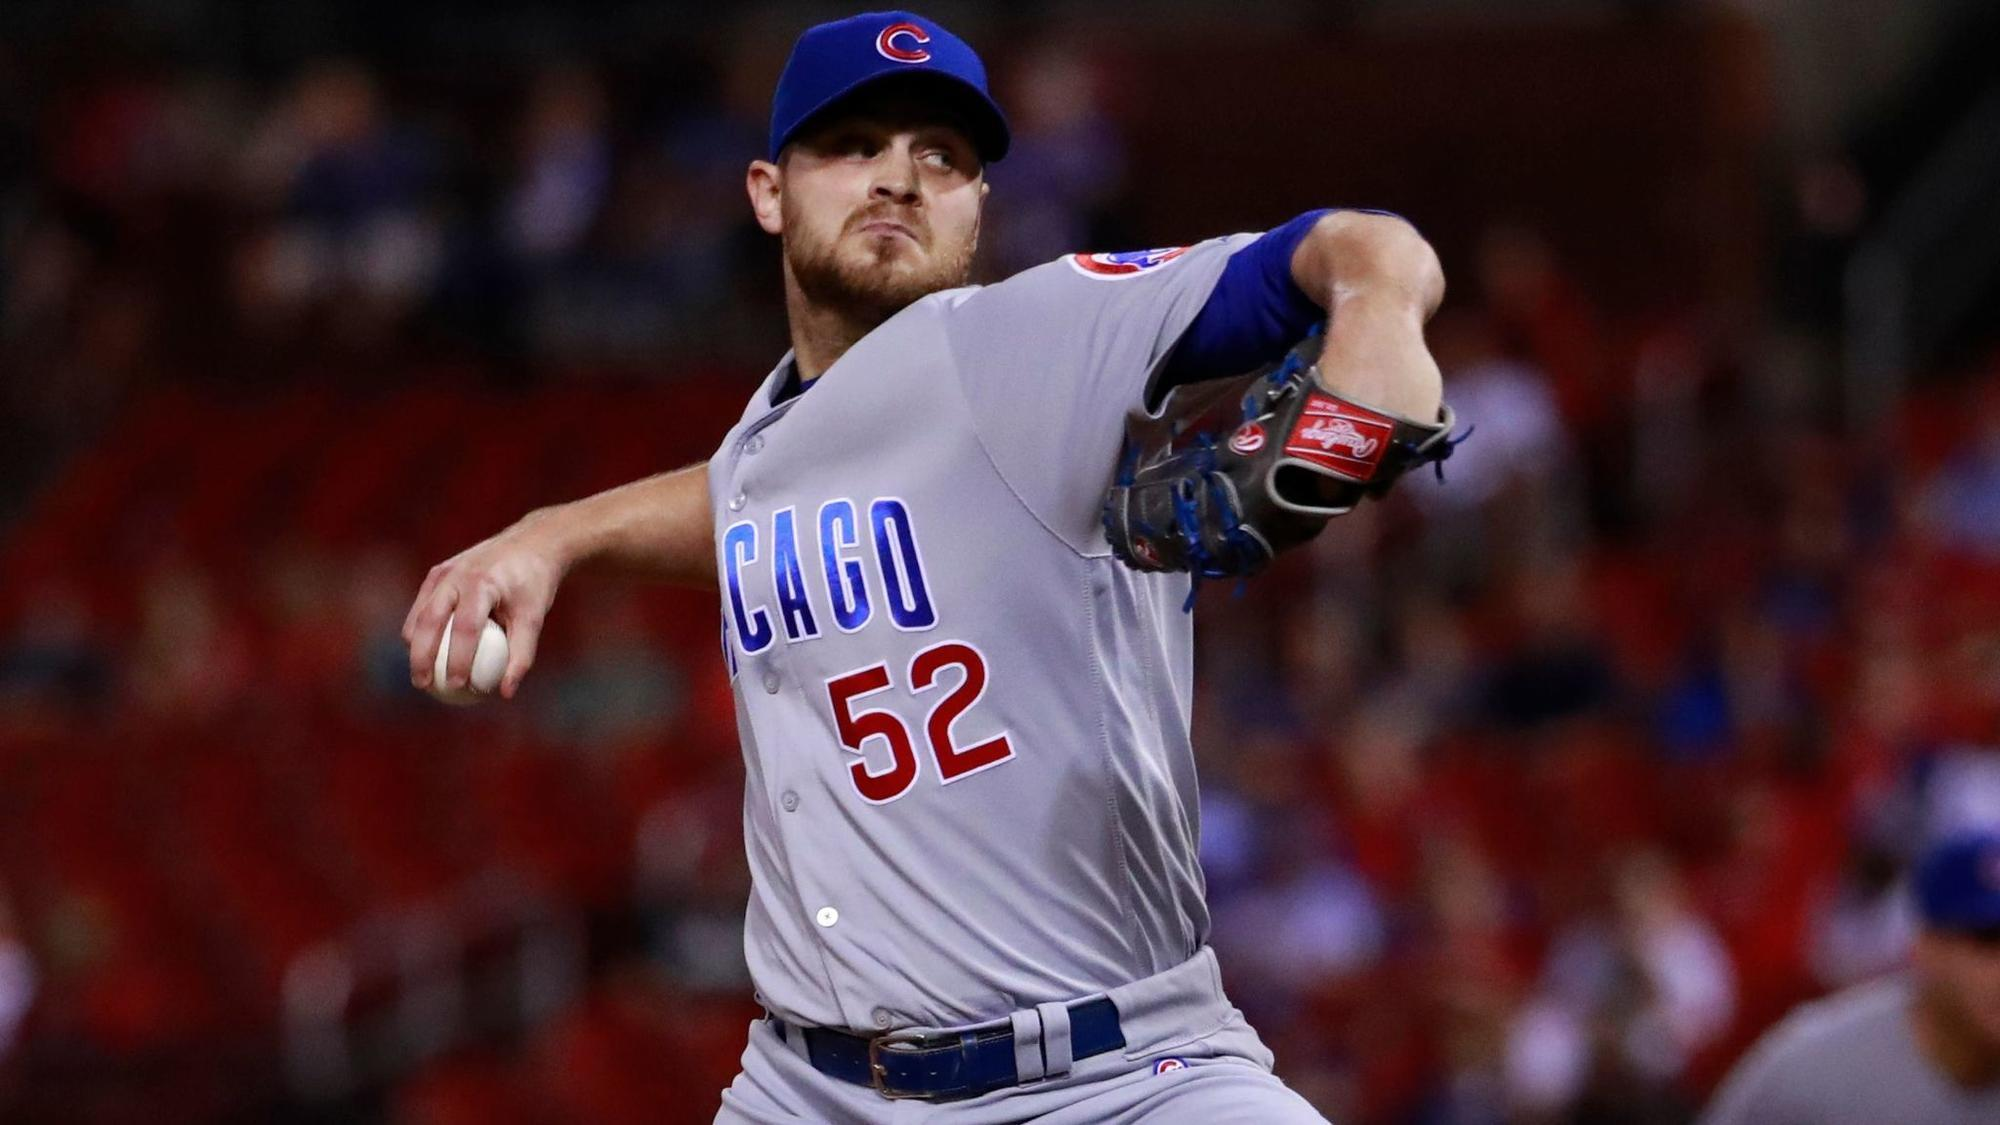 Ct-spt-cubs-justin-grimm-arbitration-20180208